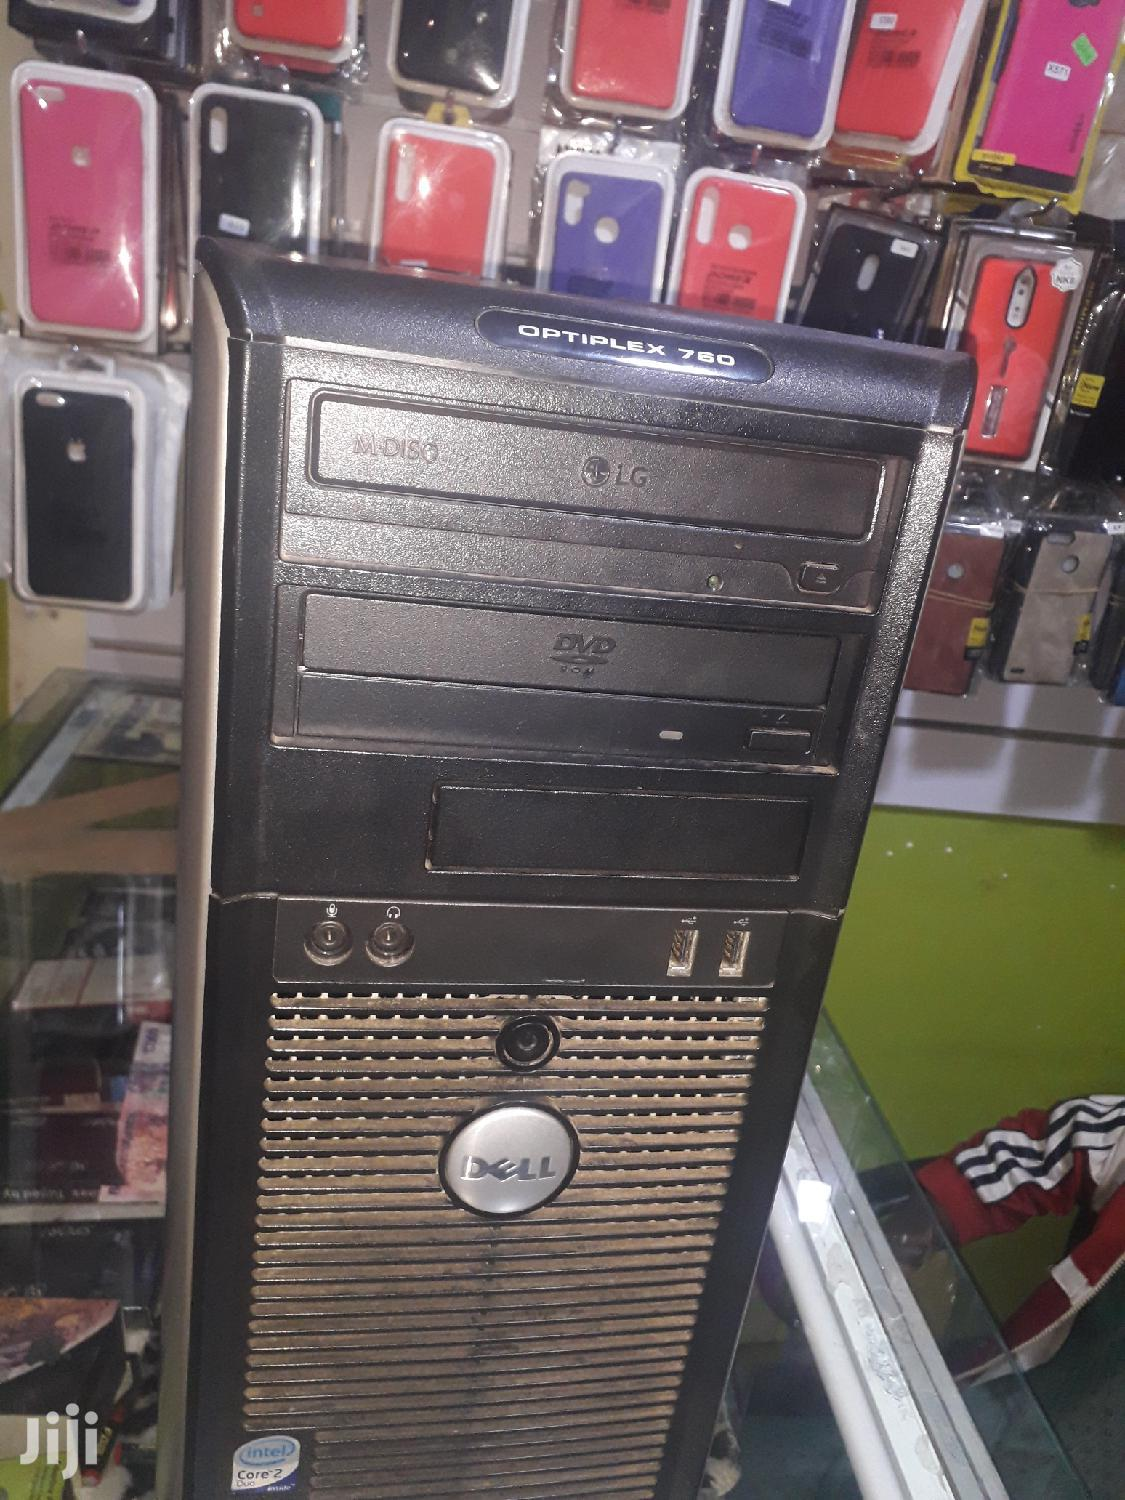 Desktop Computer Dell OptiPlex 7050 1GB Intel Core 2 Duo HDD 160GB | Laptops & Computers for sale in Kampala, Central Region, Uganda